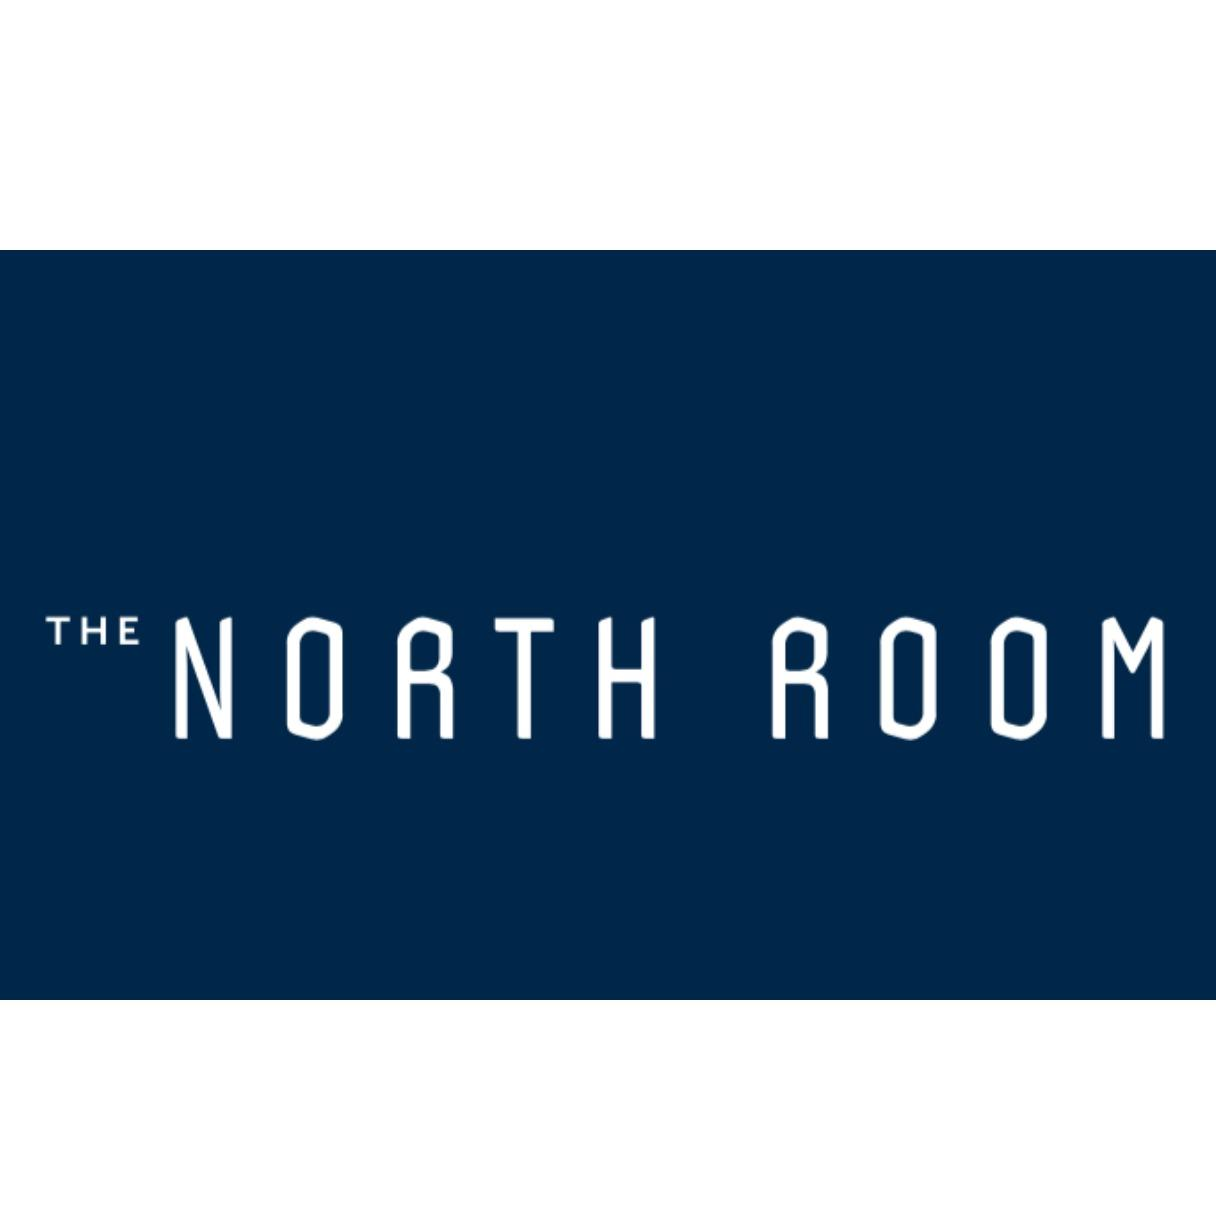 The North Room